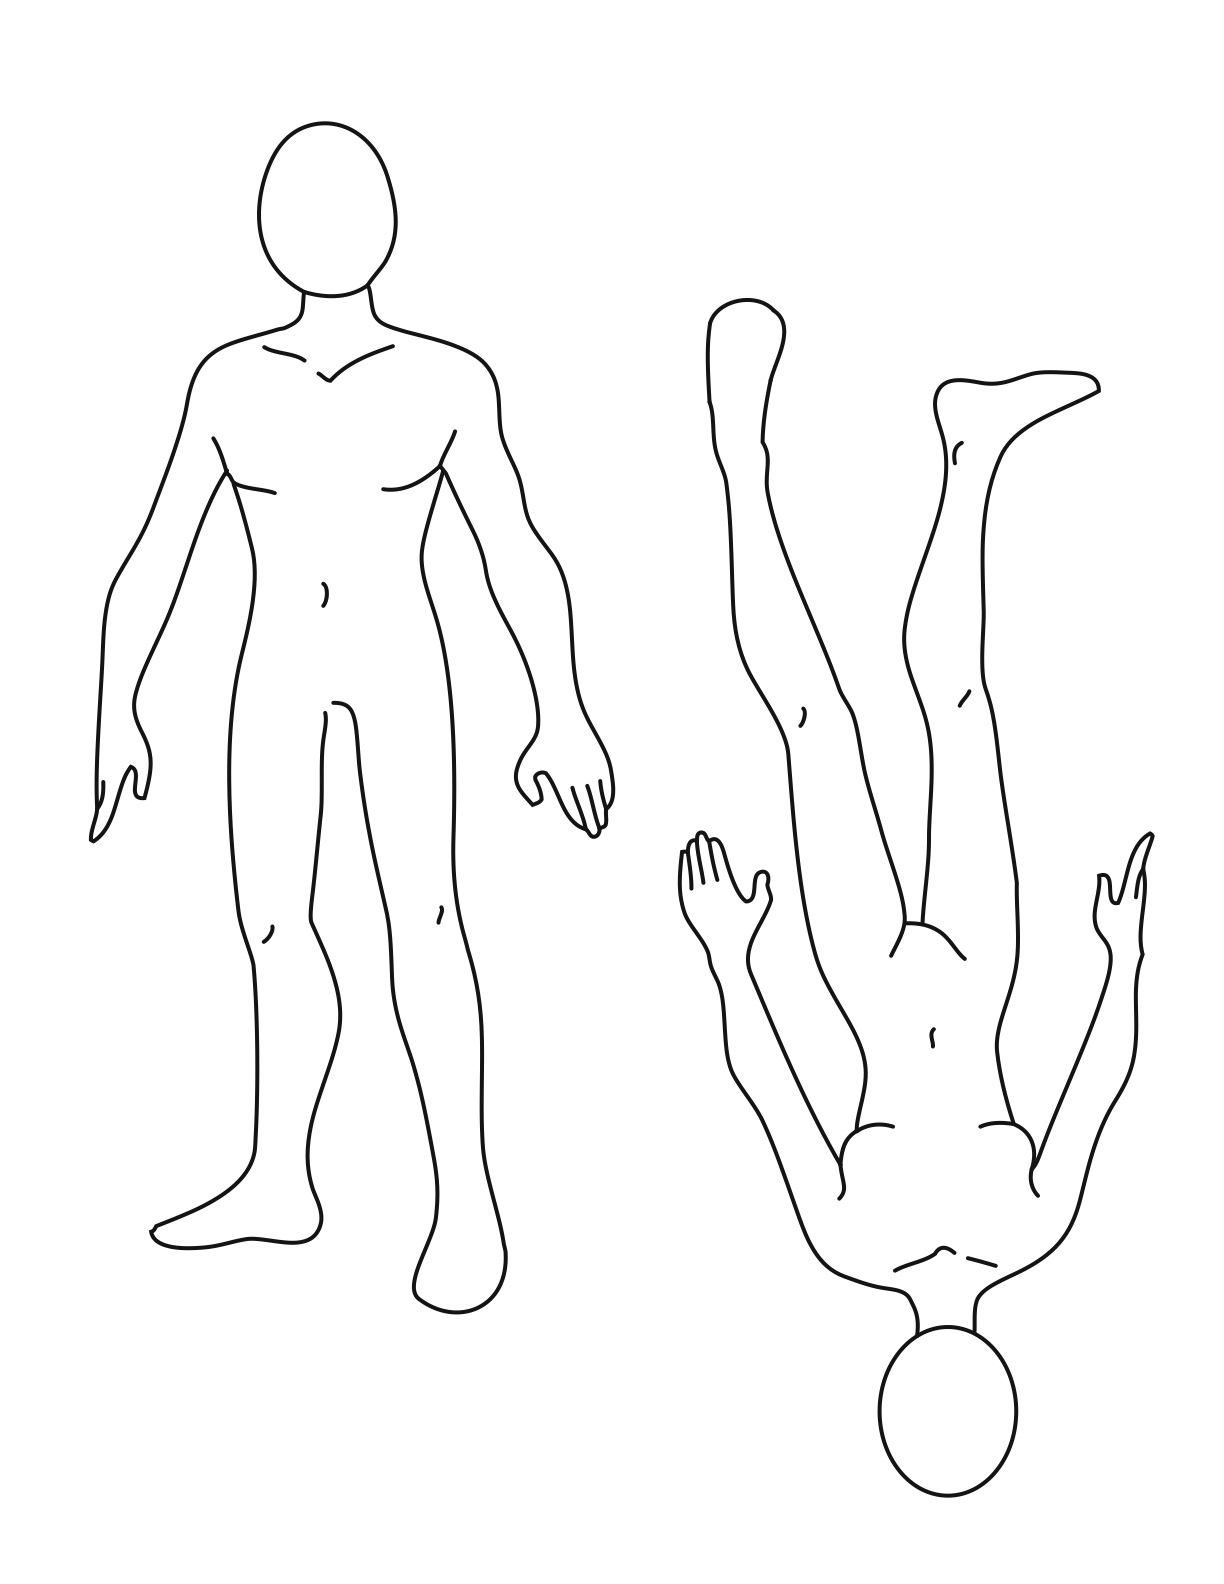 Free Human Body Outline Printable Download Free Clip Art